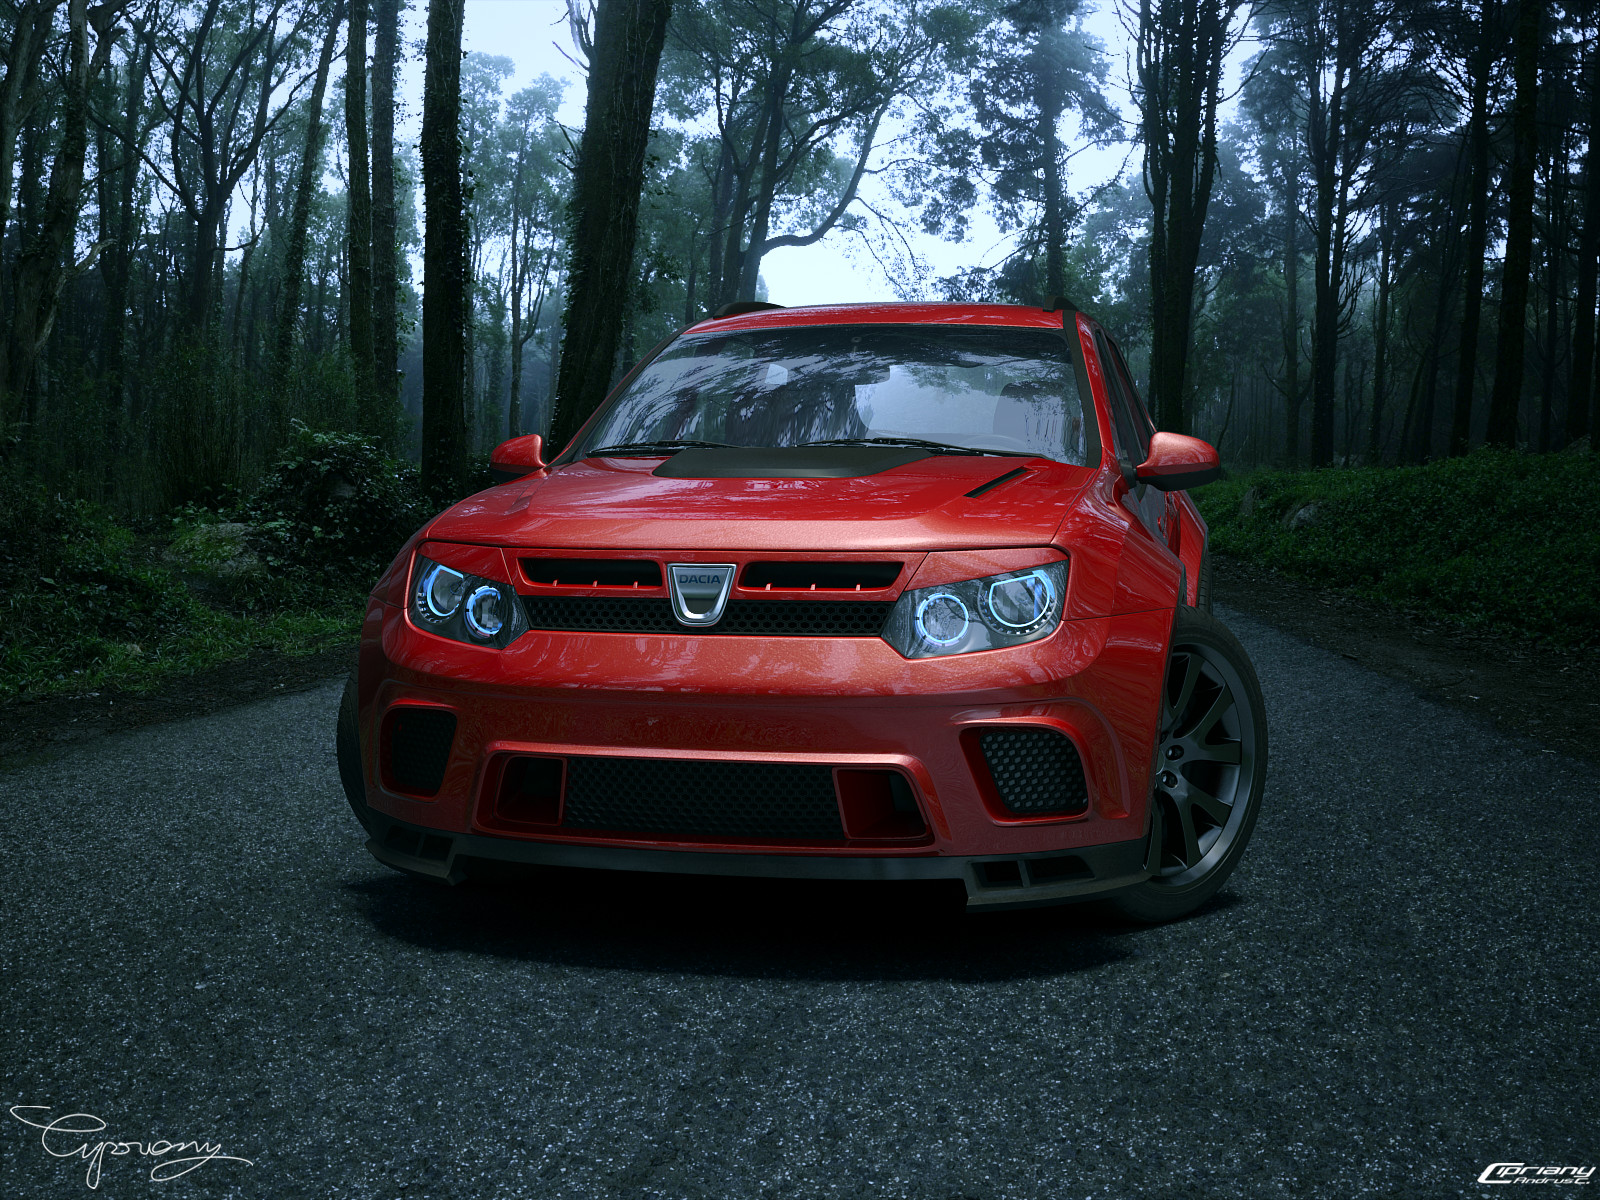 dacia duster tuning 25 by cipriany on deviantart. Black Bedroom Furniture Sets. Home Design Ideas